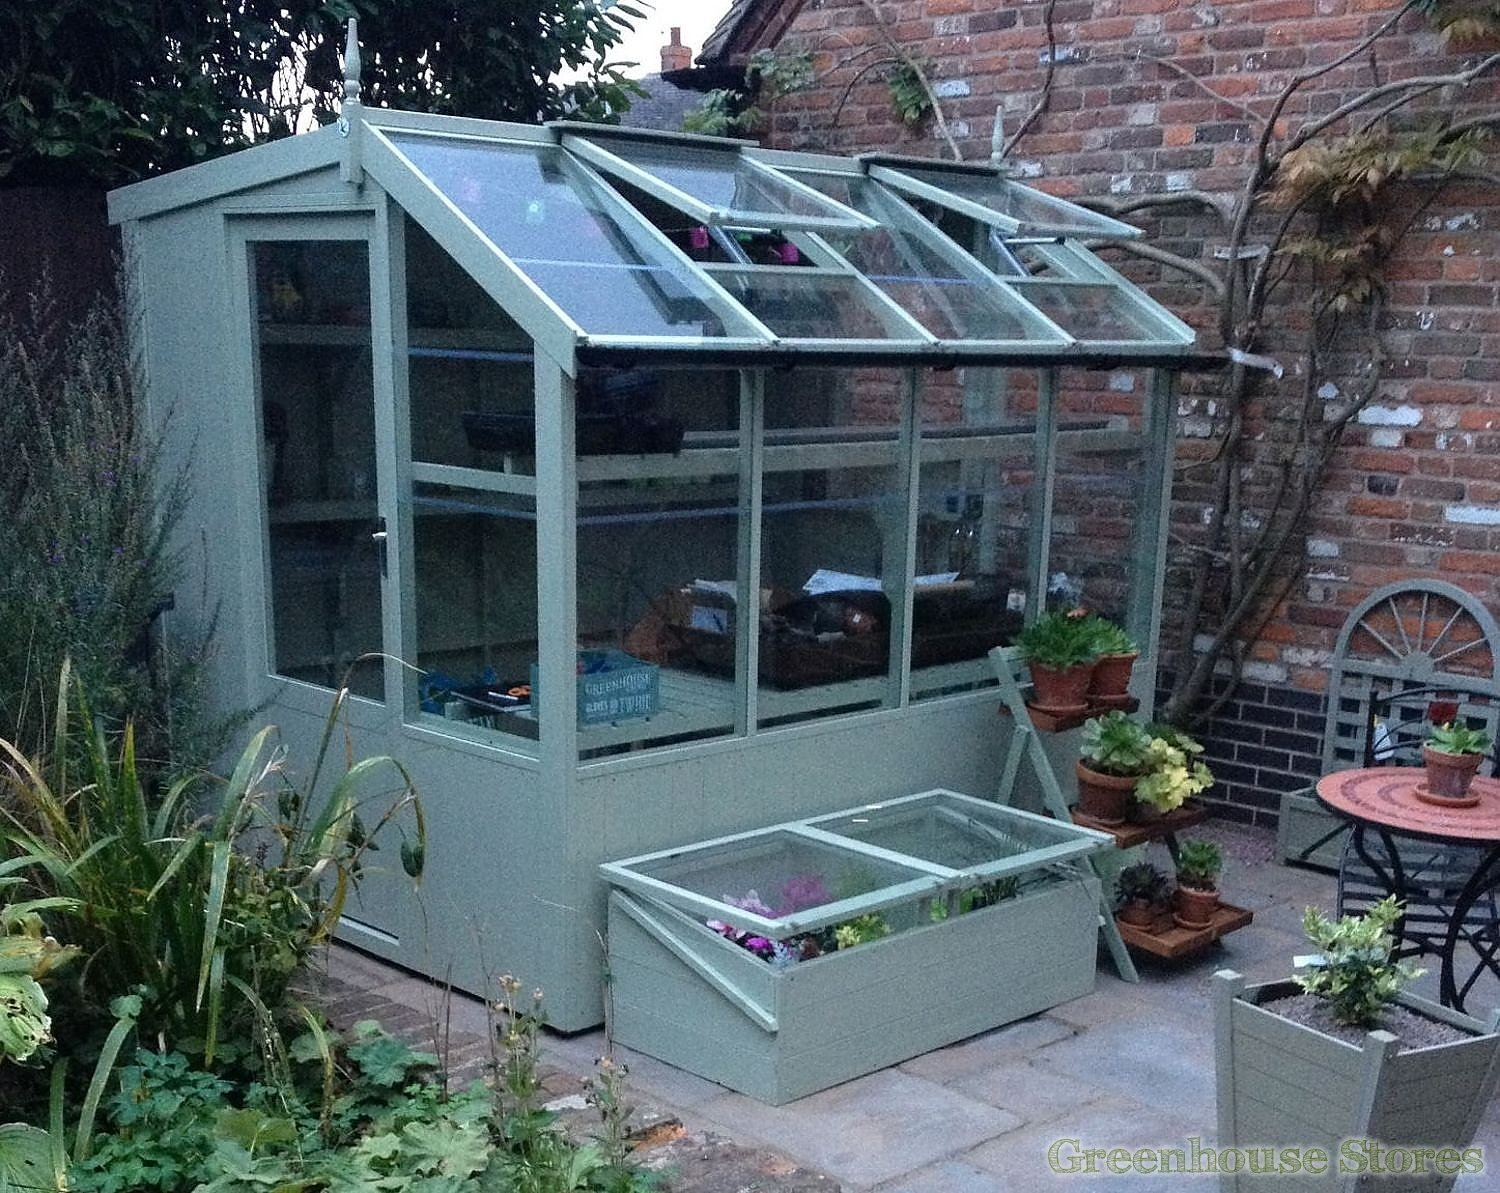 Wonderful Potting Shed #5: Swallow Jay 6x8 Potting Shed In Summer Green